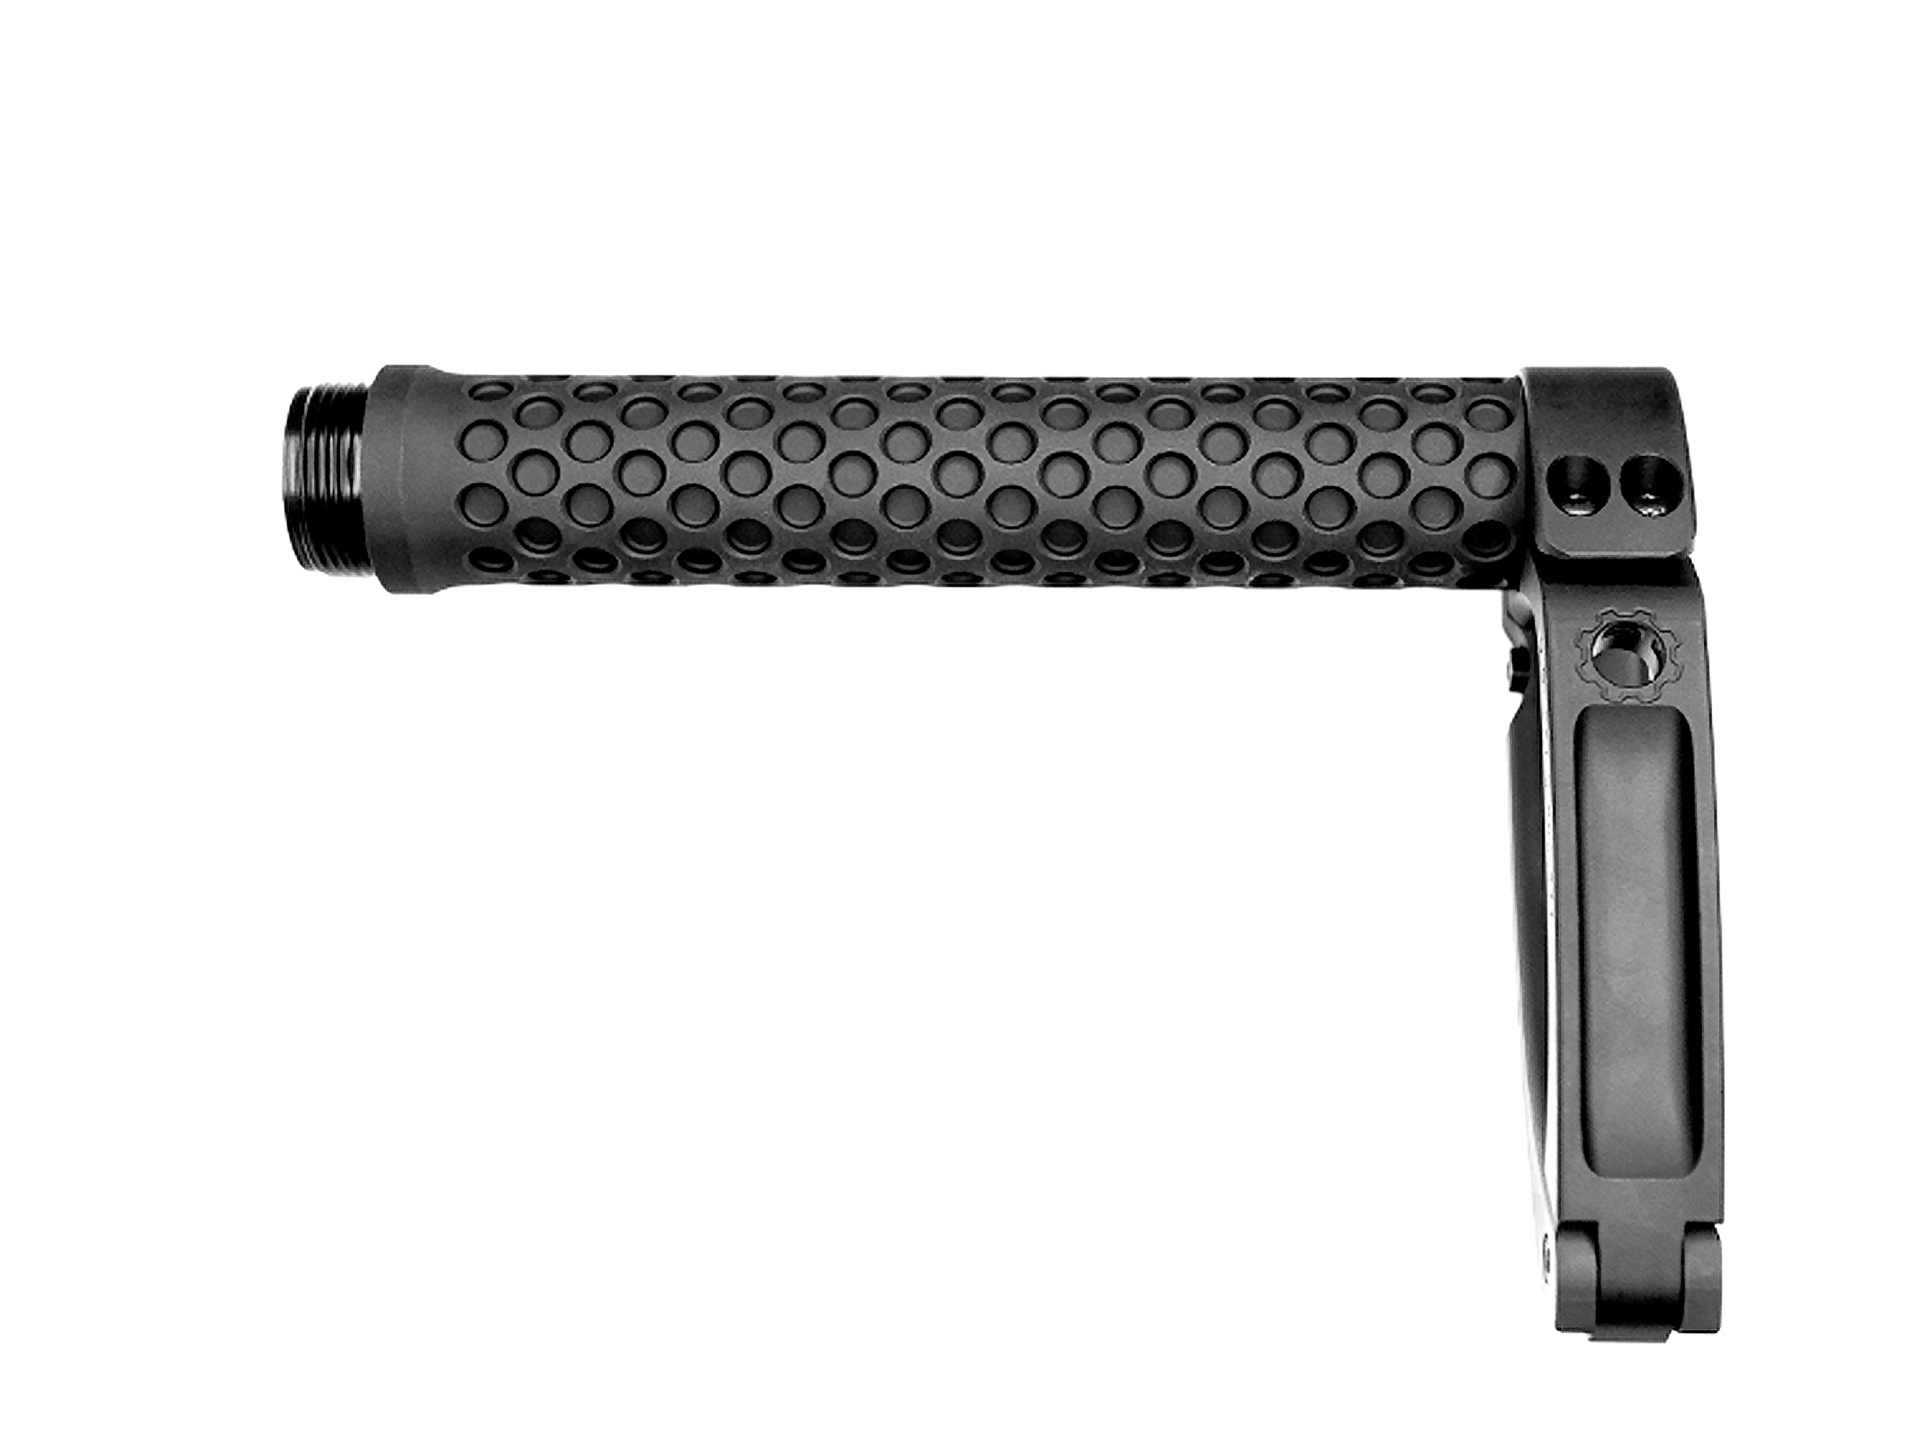 SABERTUBE® Direct to Receiver Mid-Length Pistol